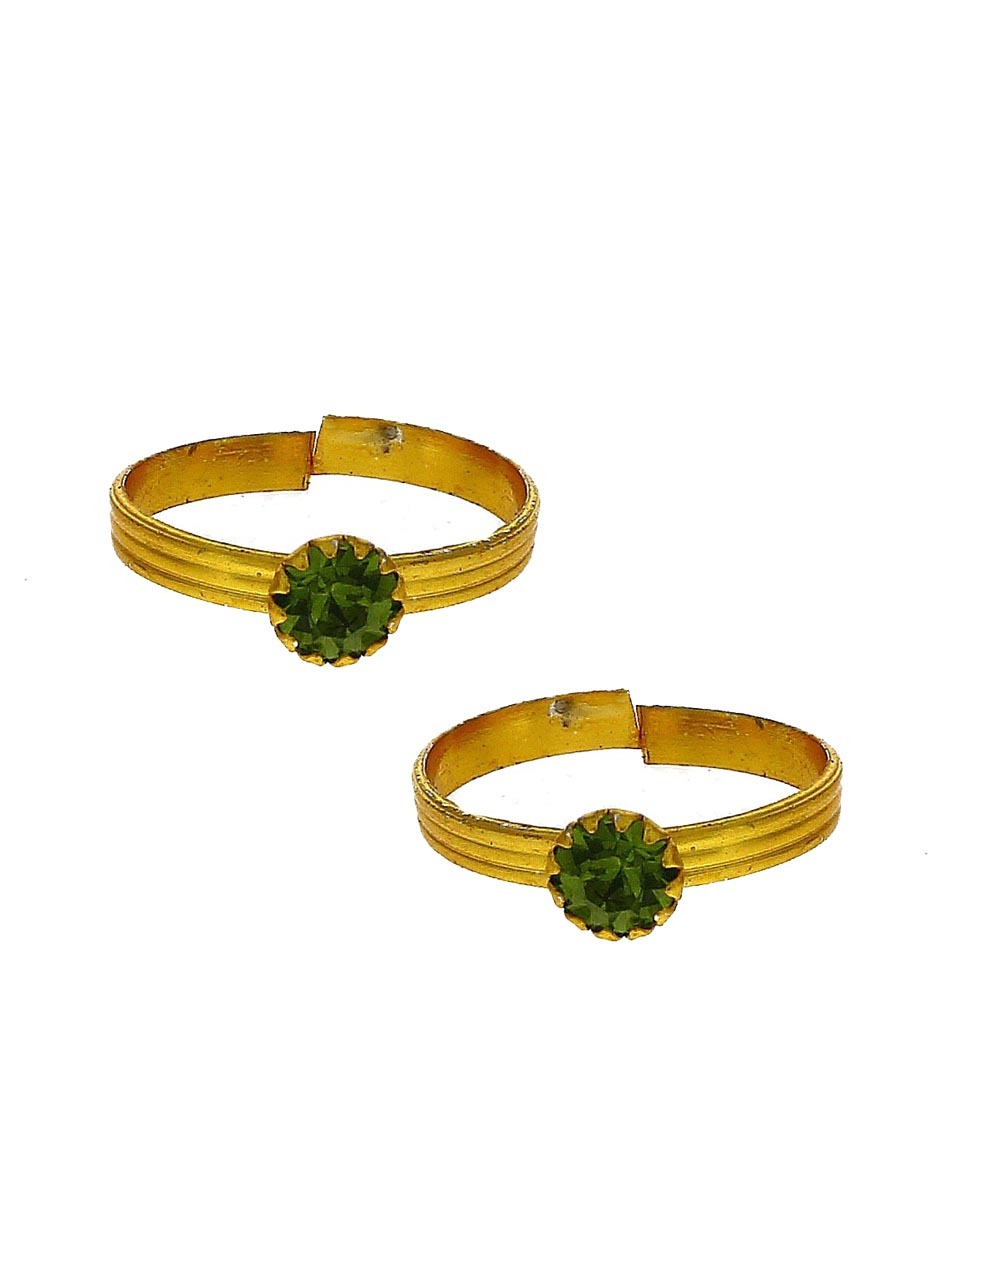 Attractive green stone golden finish bichhudi for woman